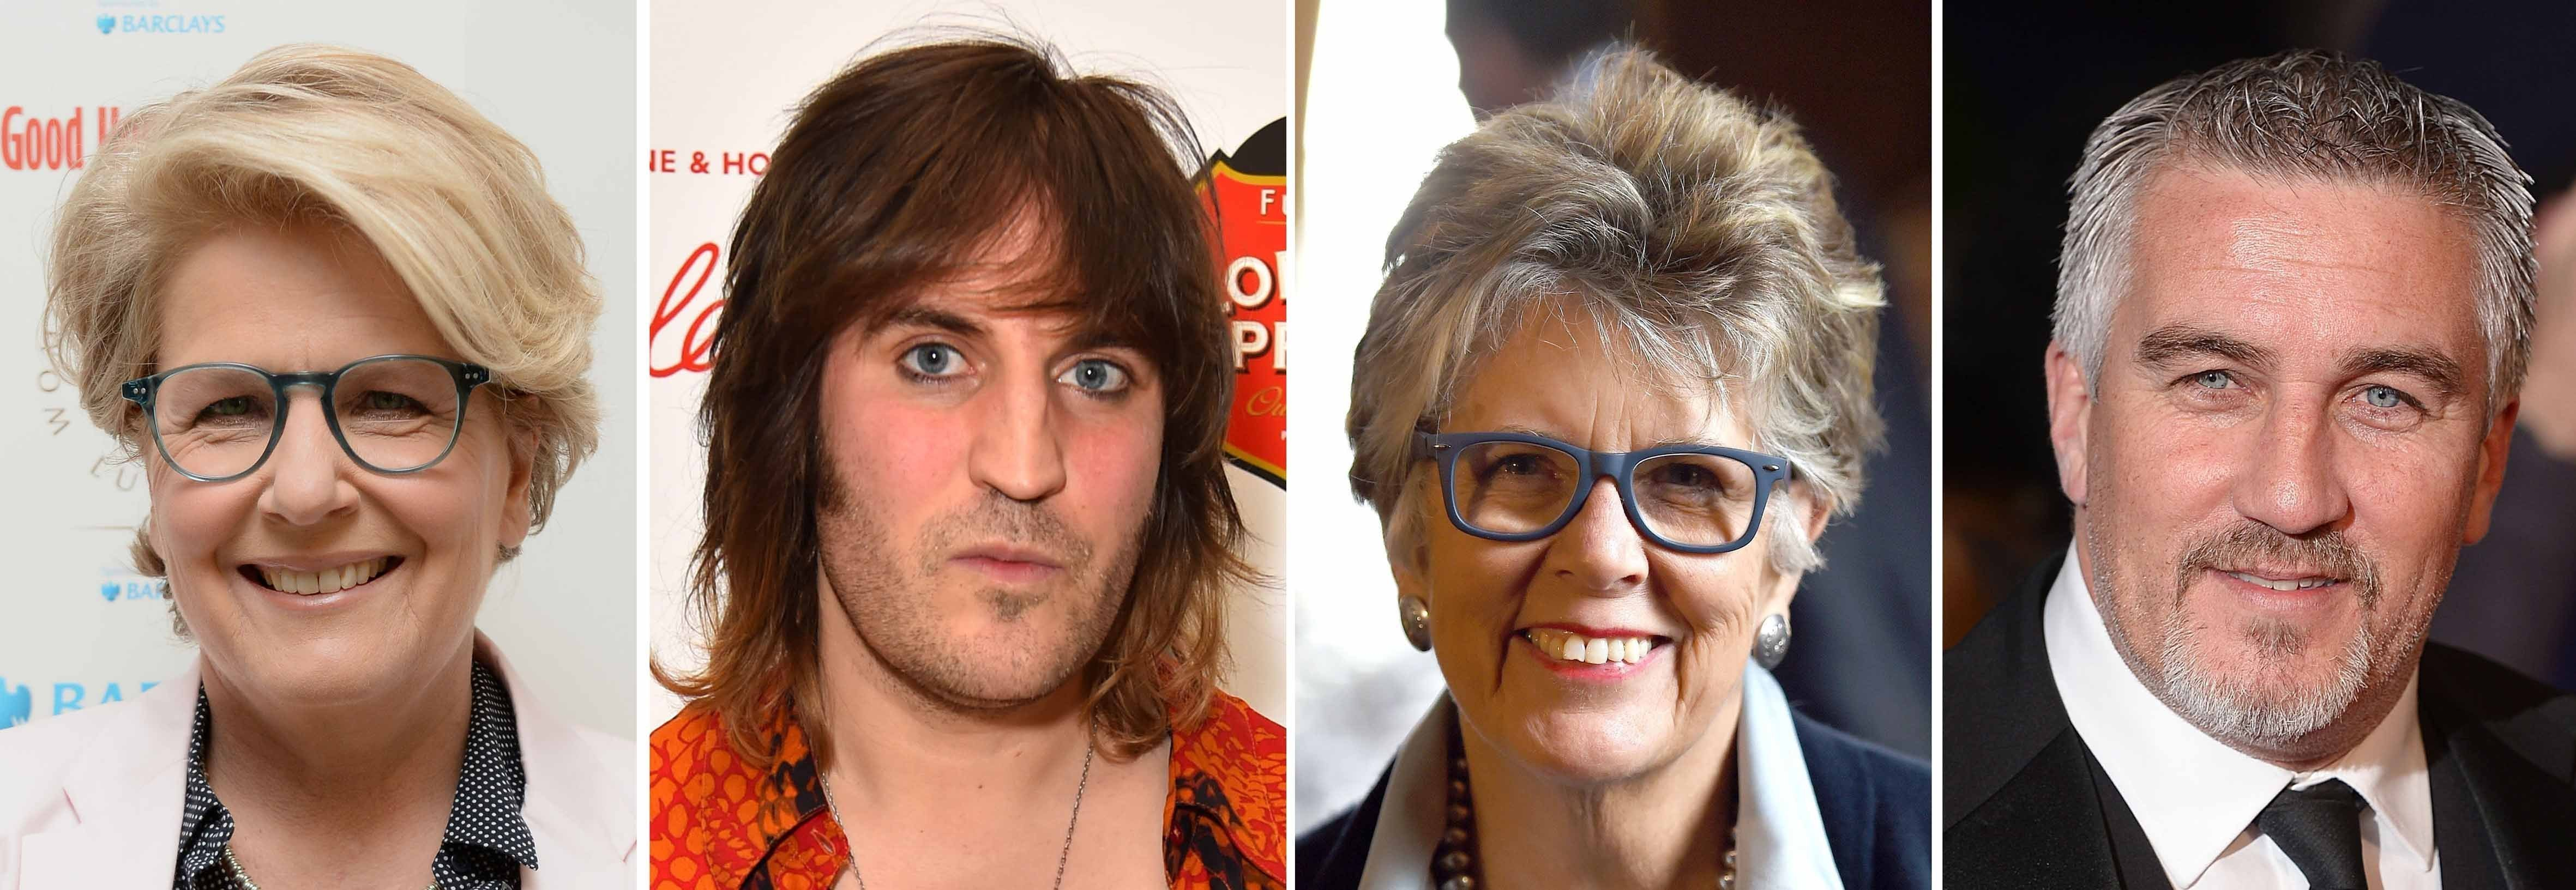 Great British Bake Off Line-Up Sandi Toksvig, Noel